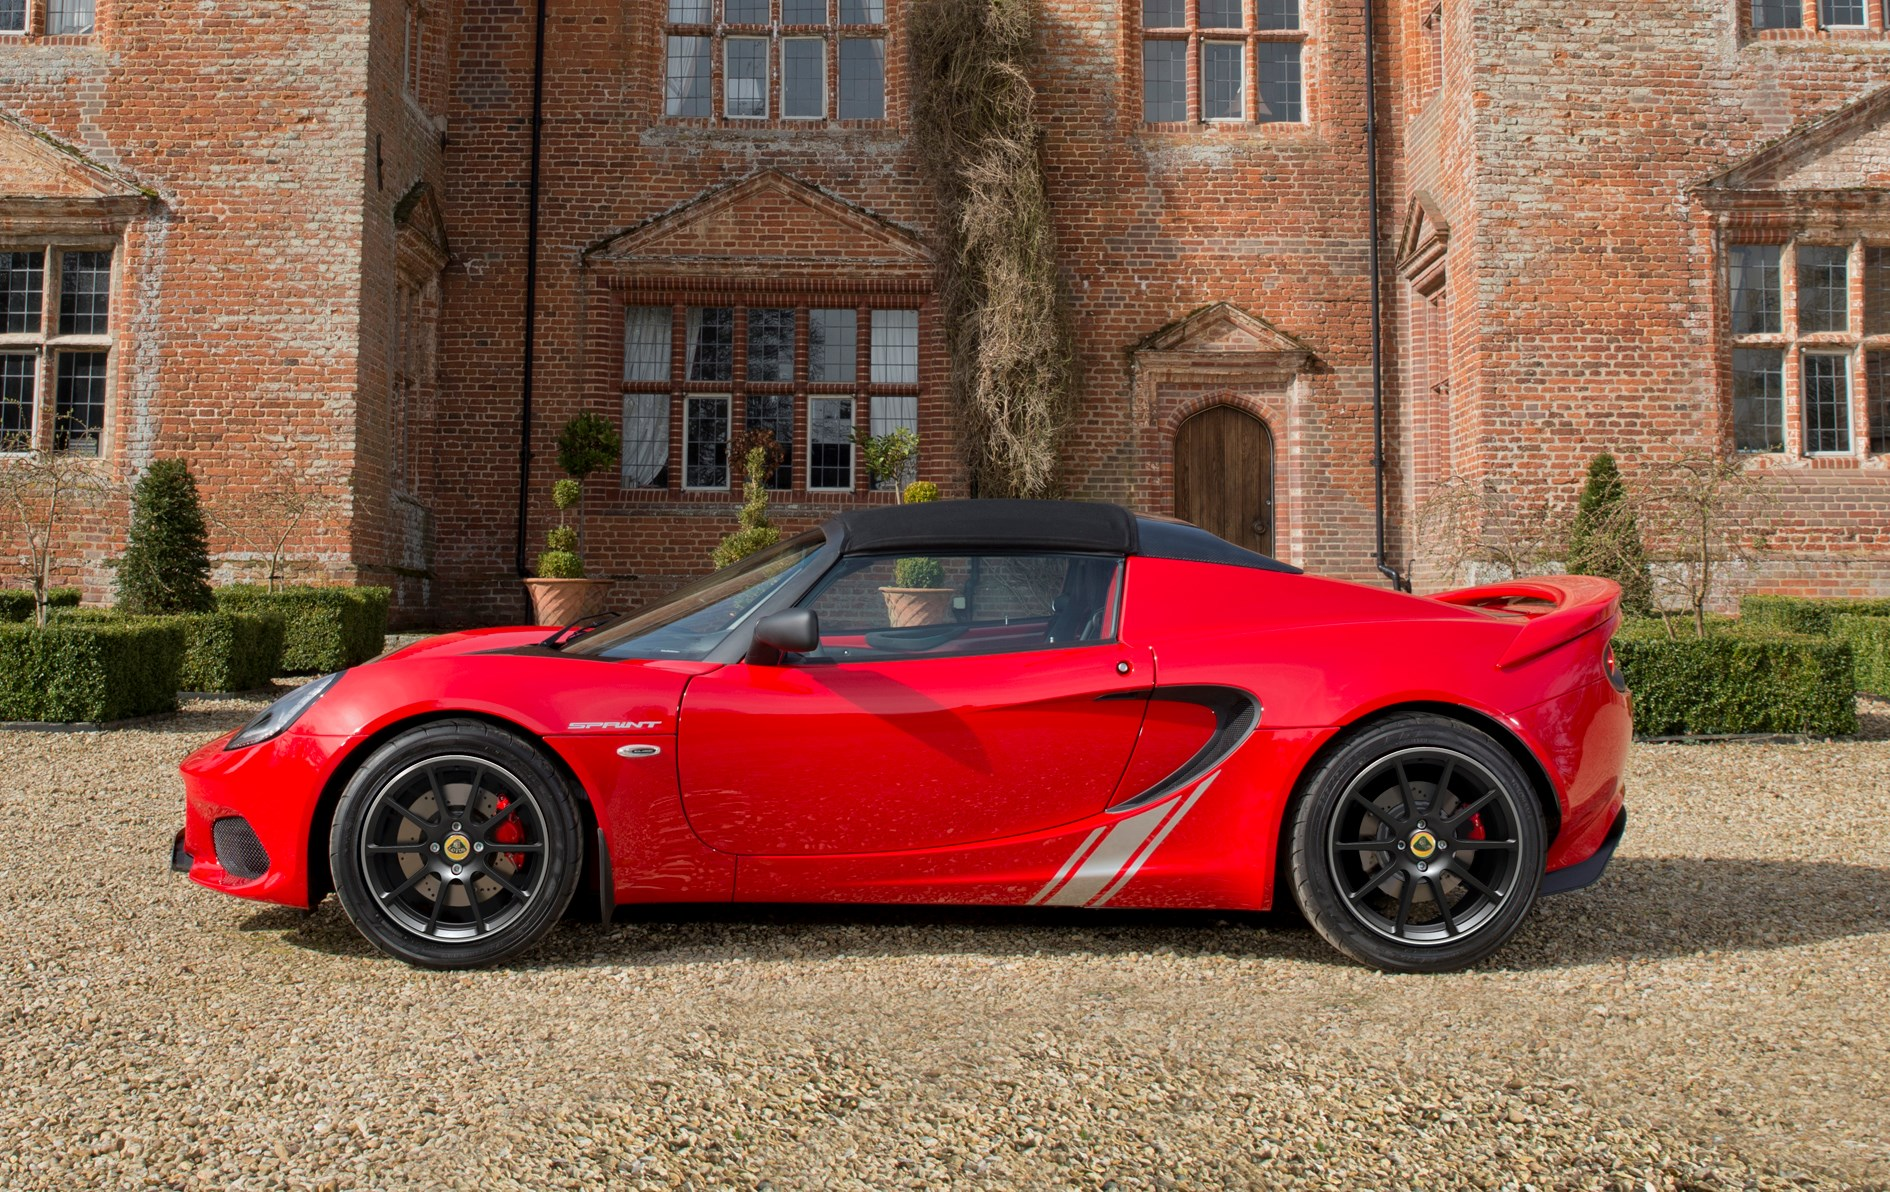 Lotus Elise Sprint News And Pictures Of 2017 Lightweight Elise By Car Magazine